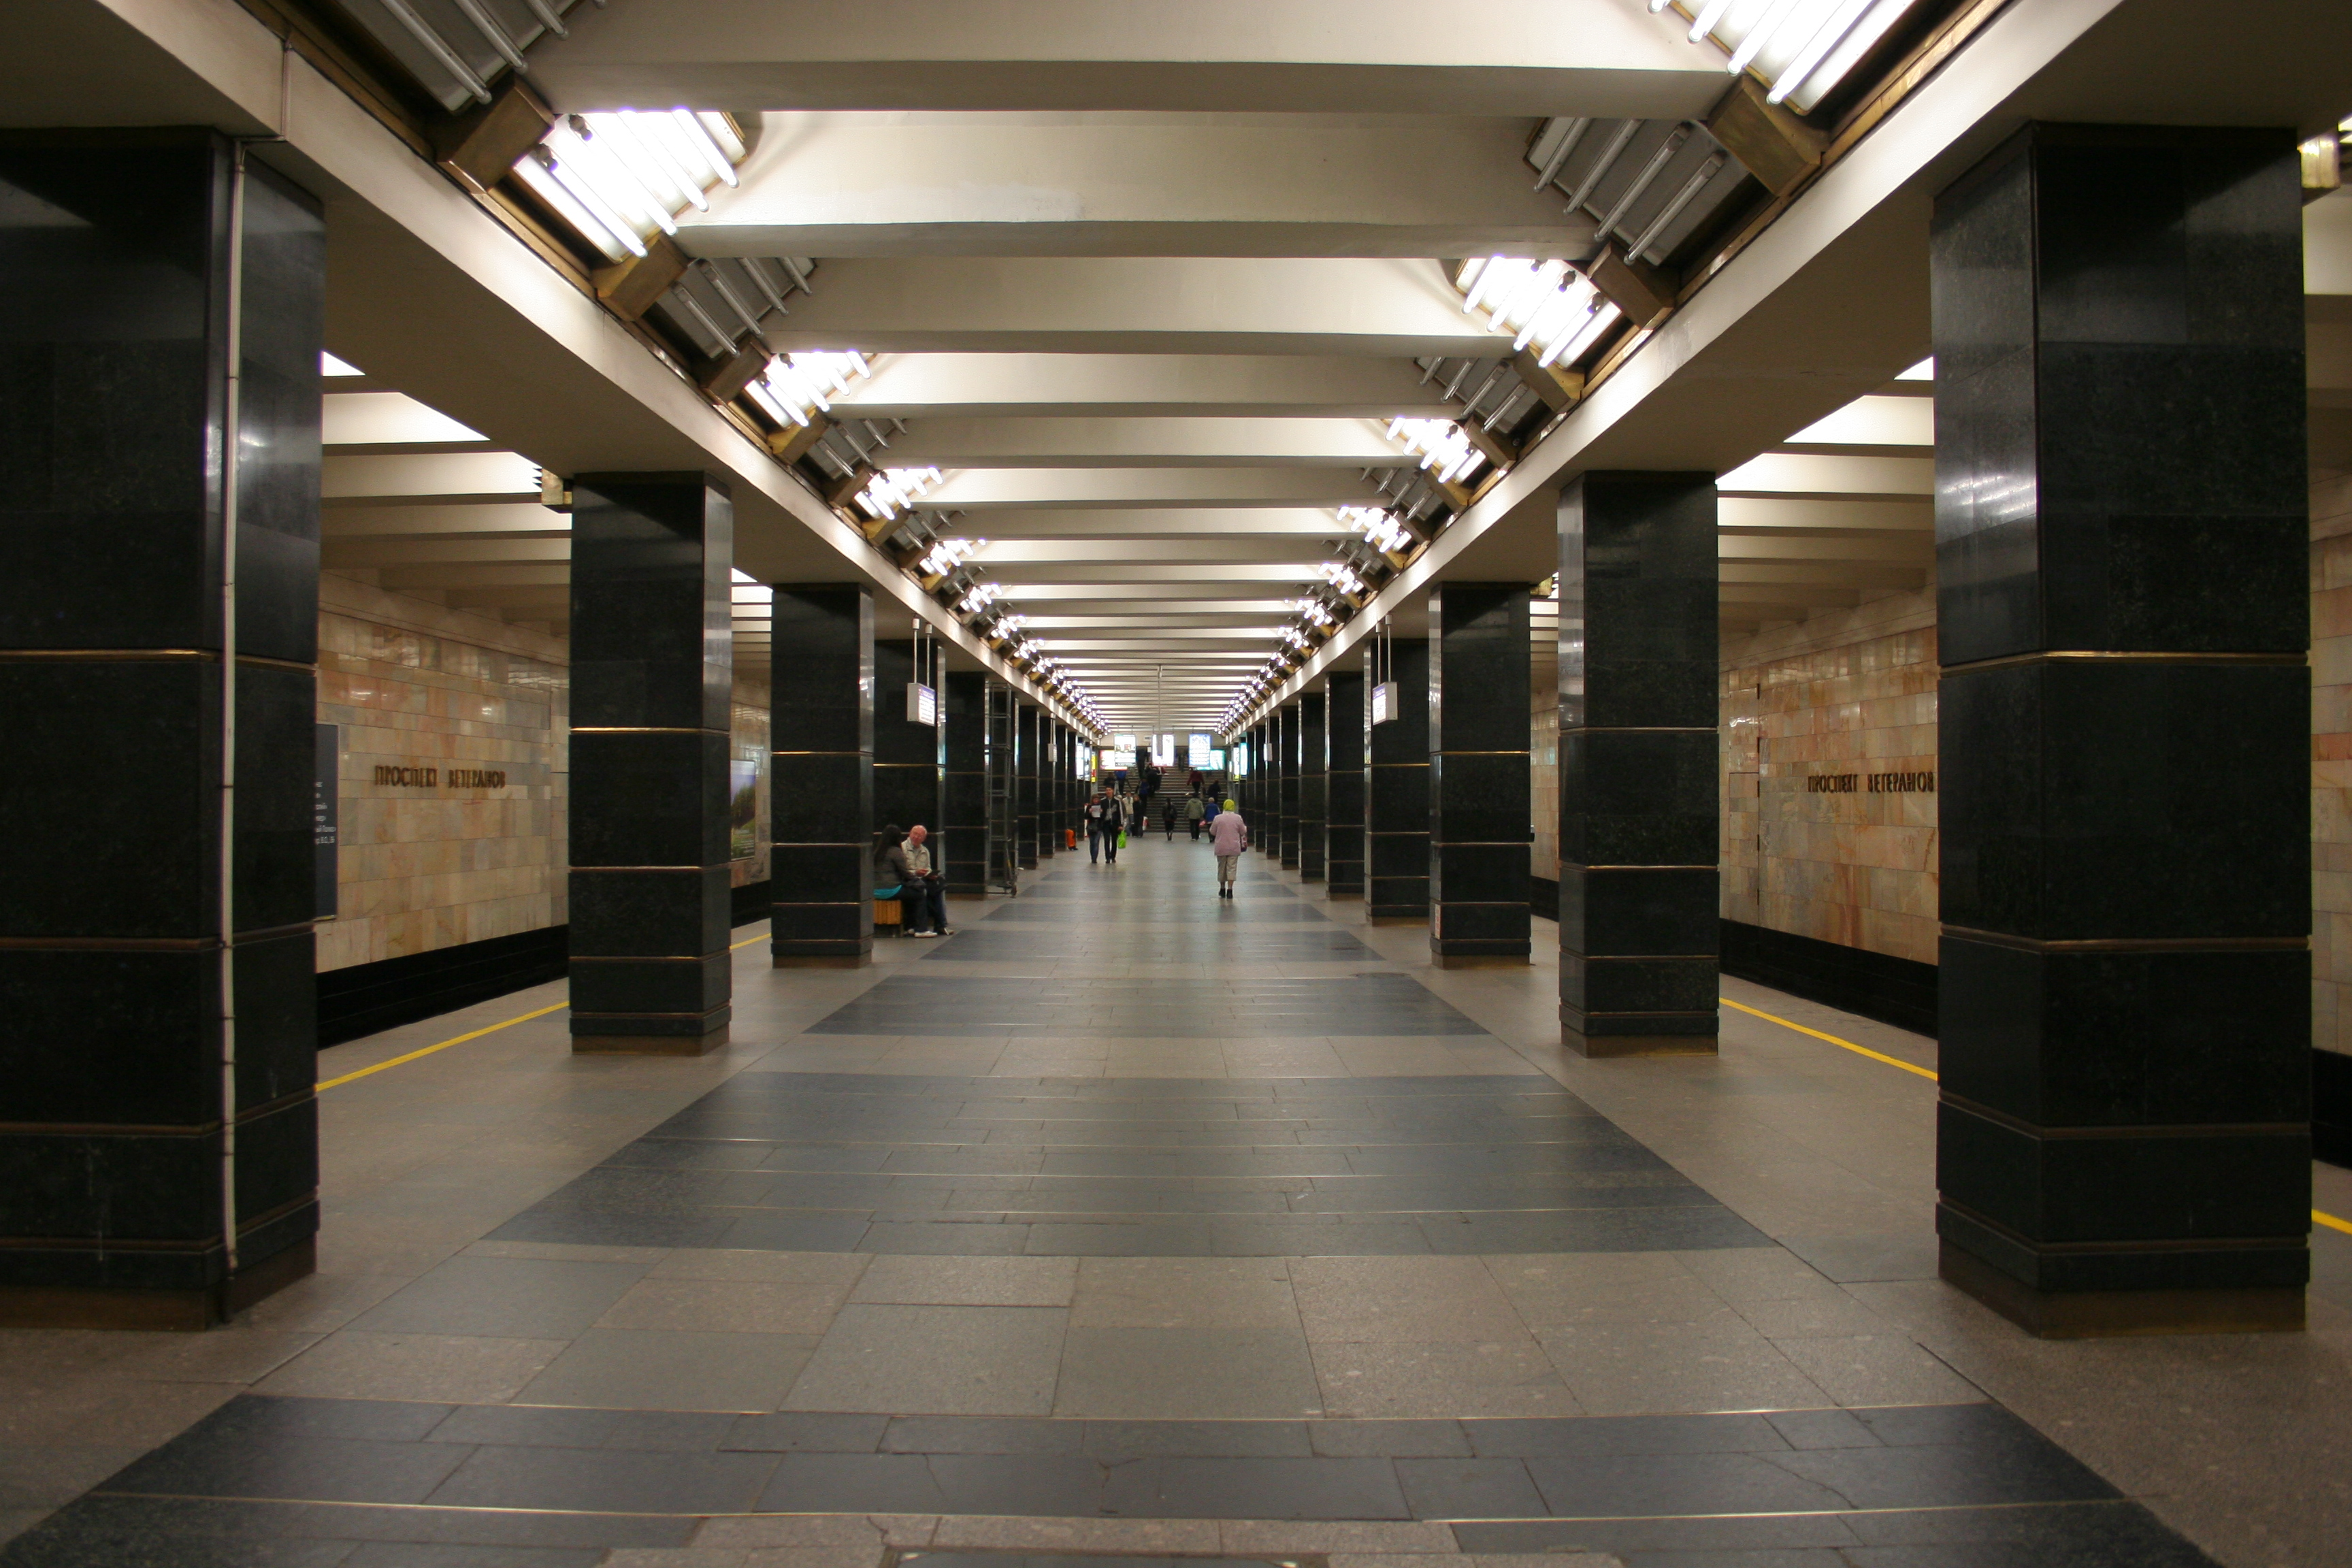 prospekt veteranov saint petersburg metro wikiwand. Black Bedroom Furniture Sets. Home Design Ideas